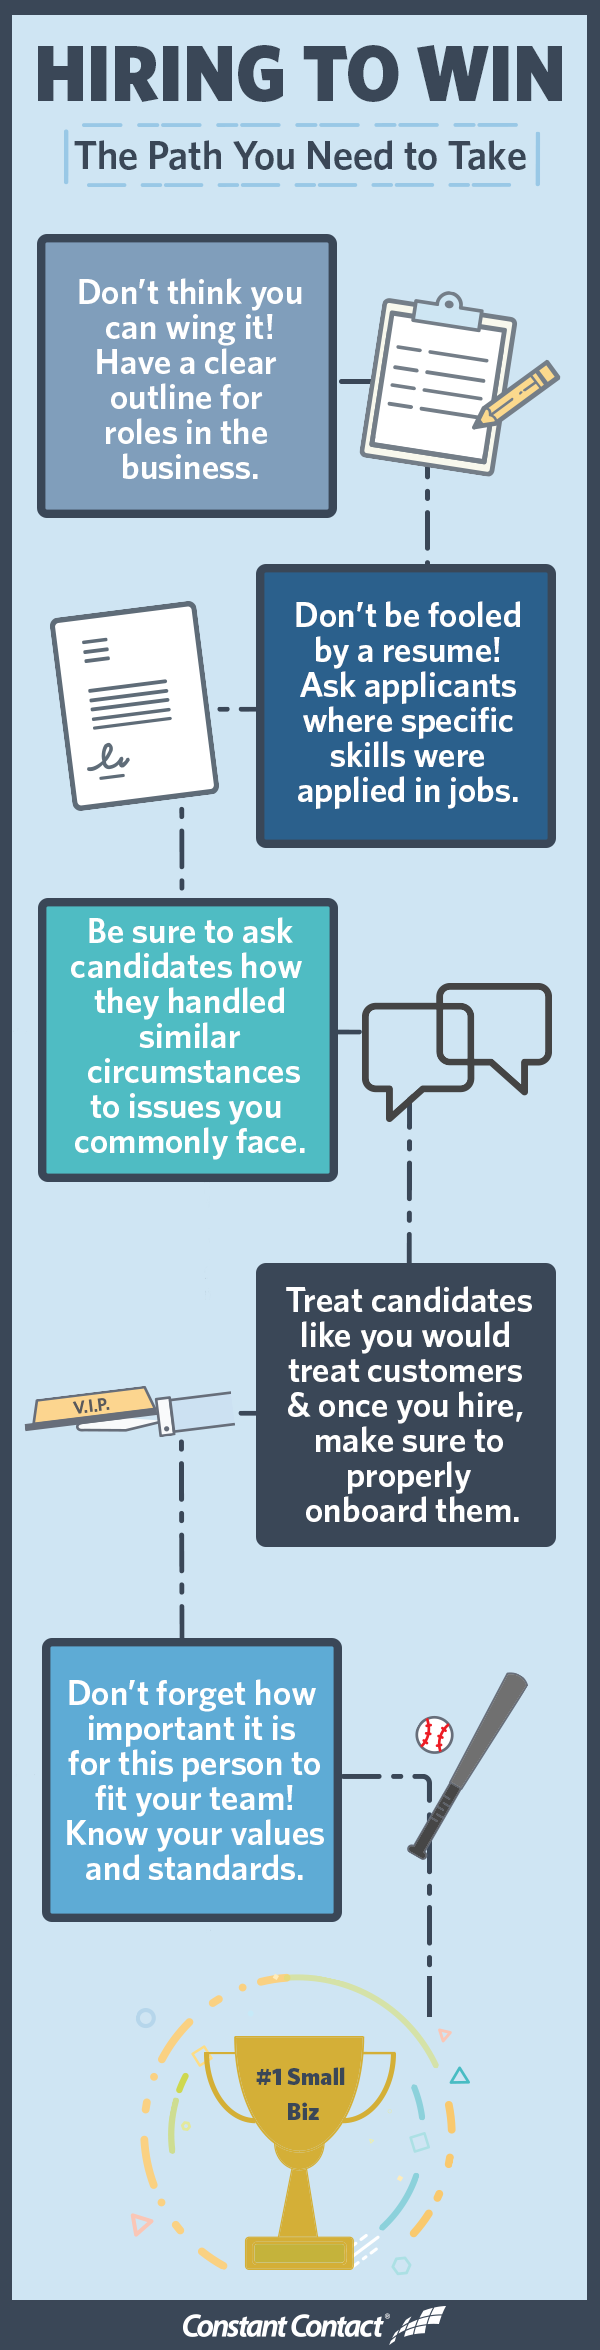 hiring to win common hiring mistakes you never want to make here s an infographic to help you avoid any costly hiring mistakes